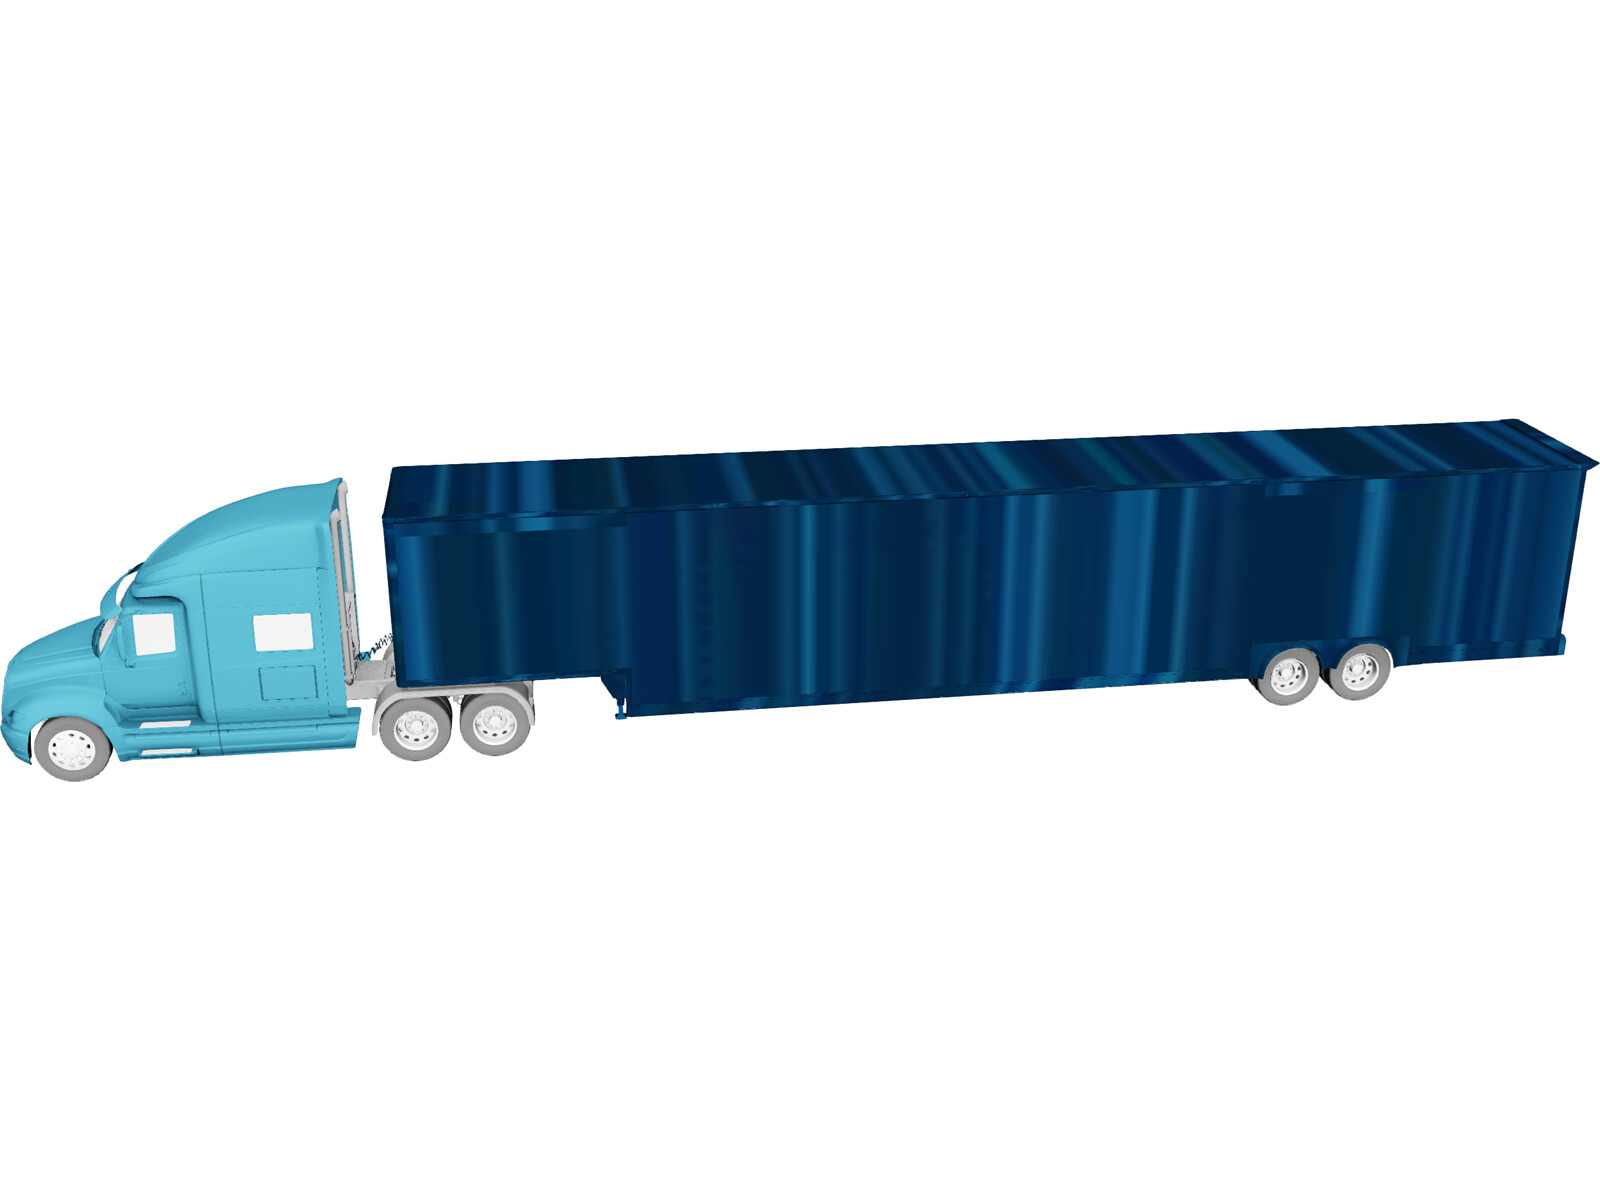 Freightliner Truck and Trailer